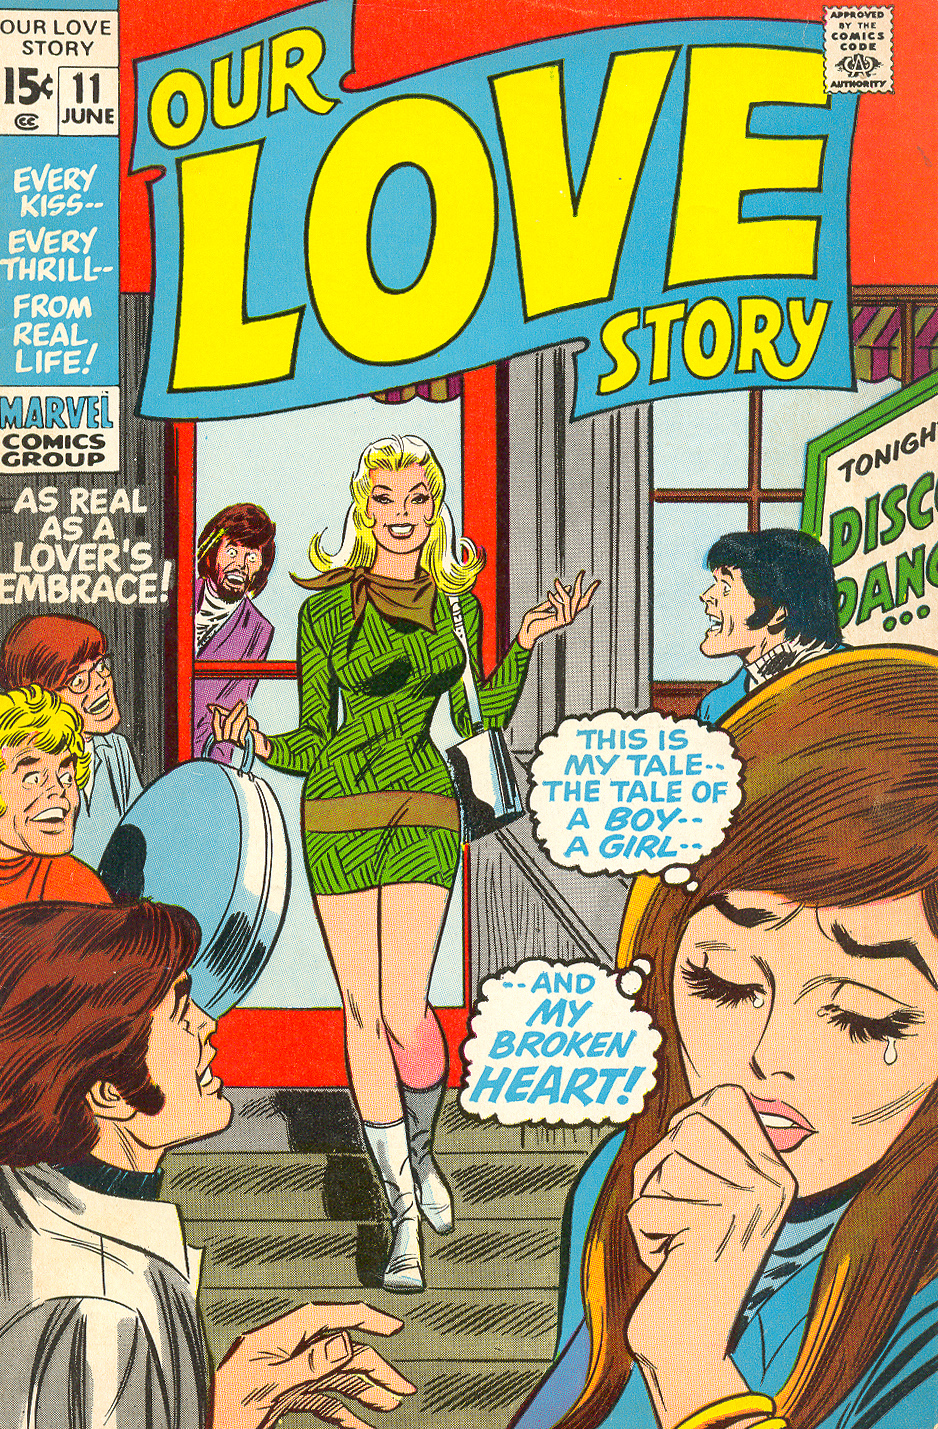 Our Love Story #11 (June 1971) Pencils: John Buscema, Inks: John Romita